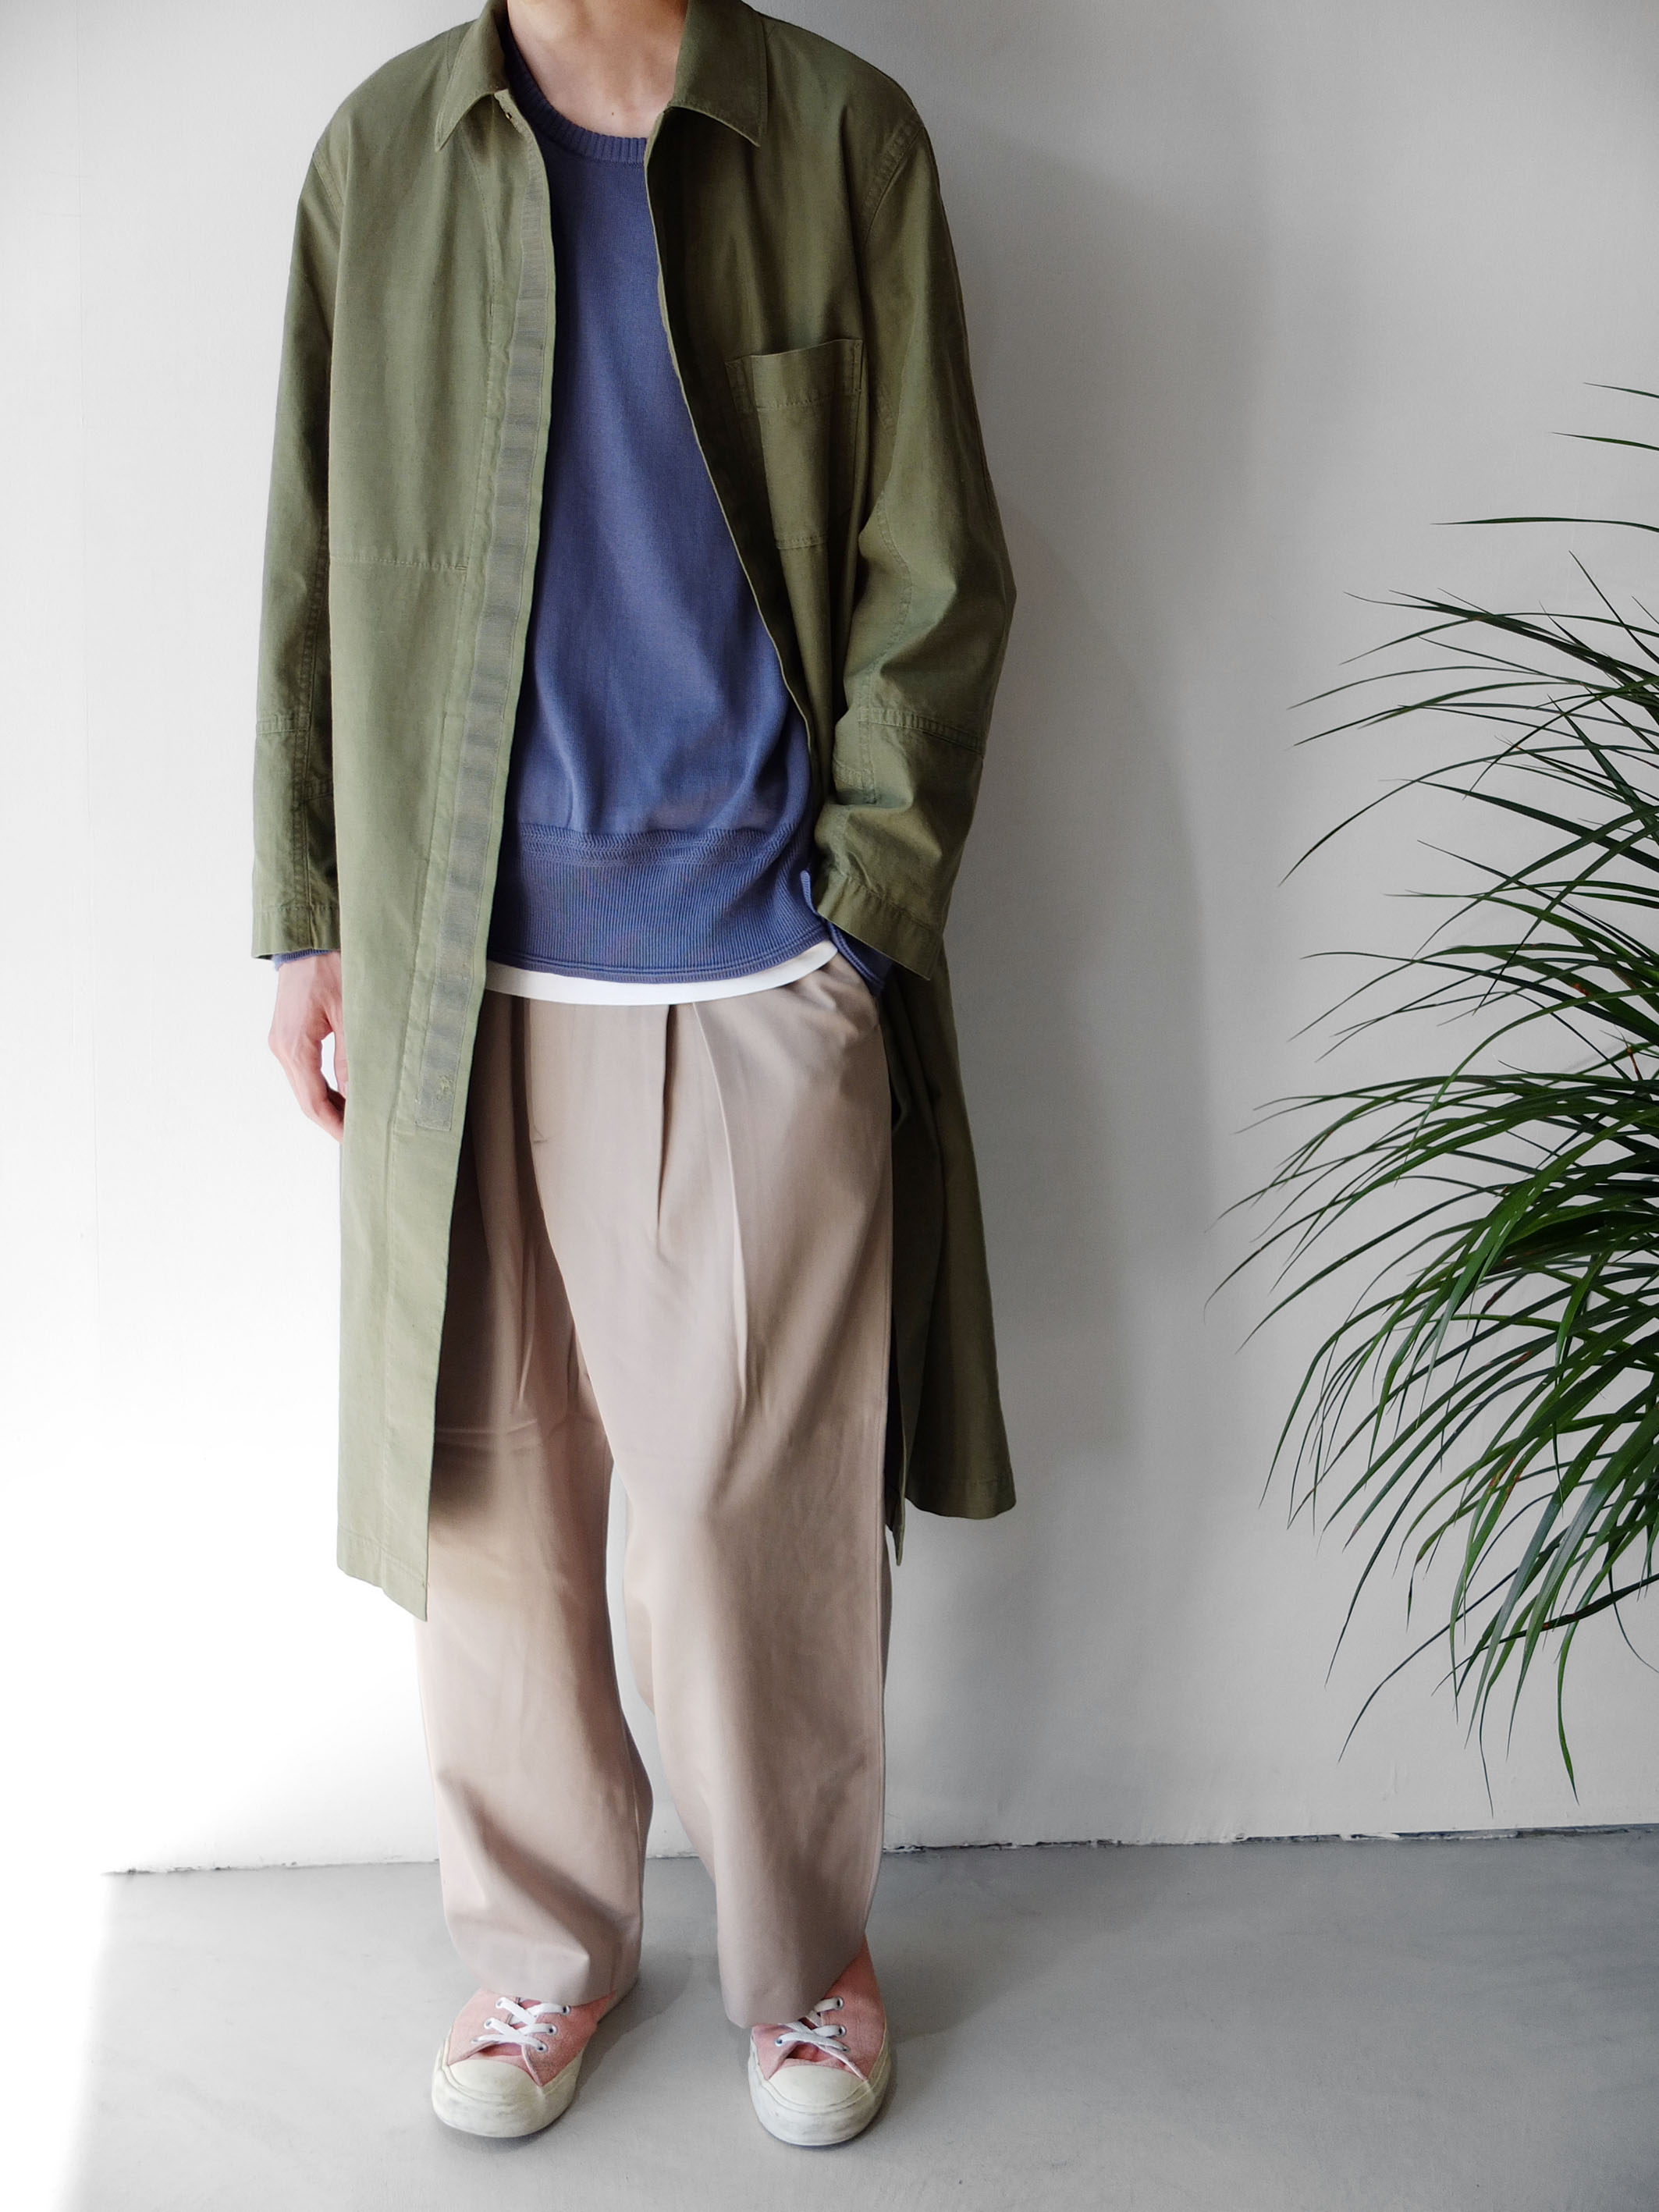 style_sample_29